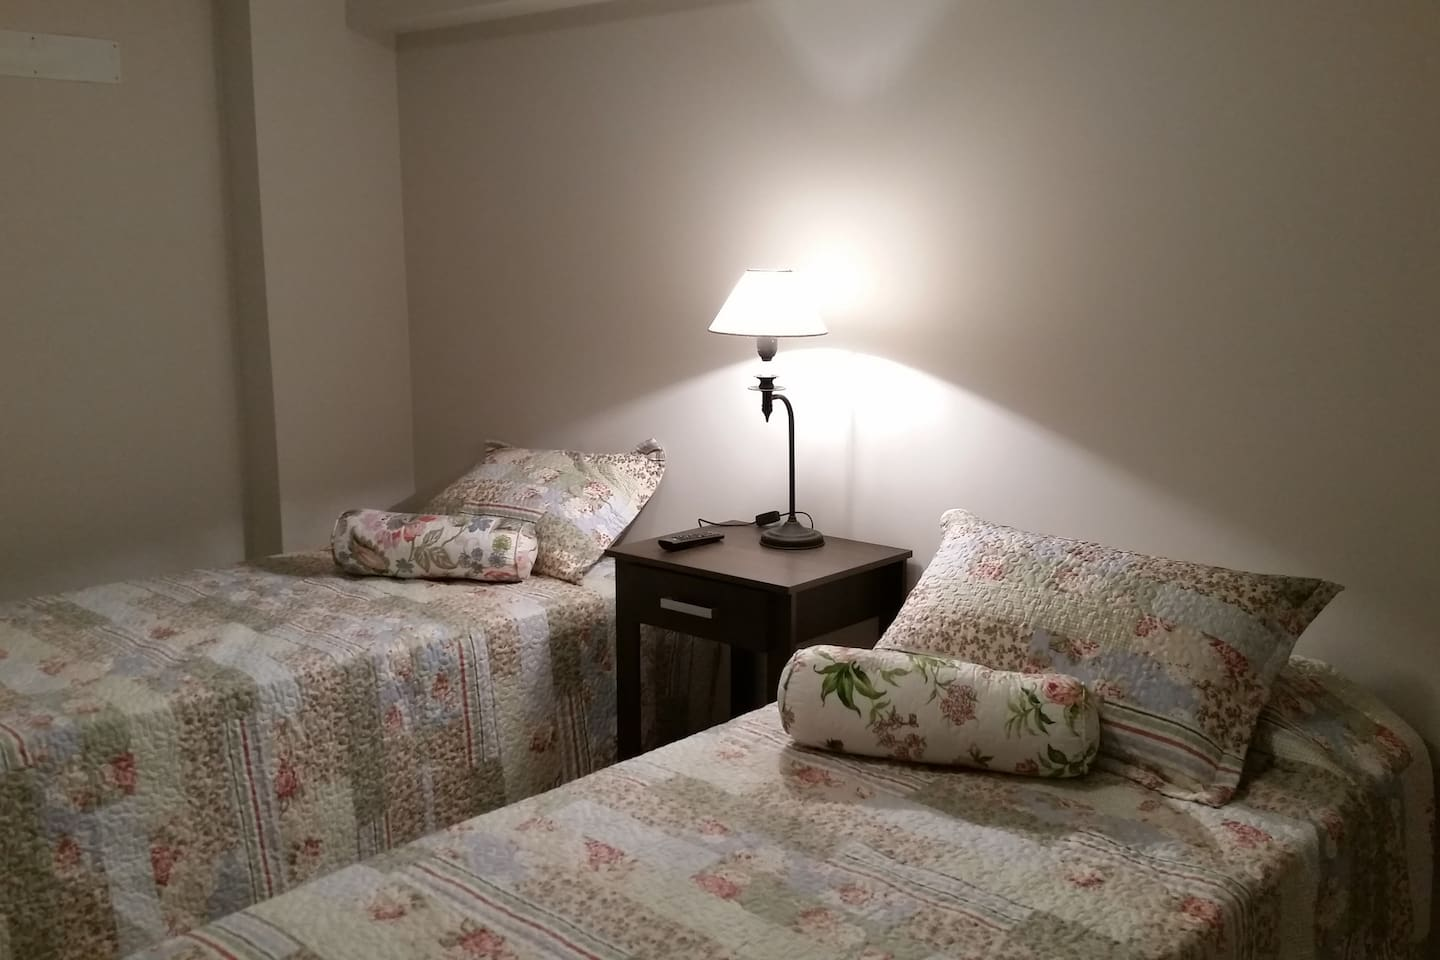 Dpto Moderno En El Centro De Salta Apartments For Rent In Salta  # Muebles Maximo Salta